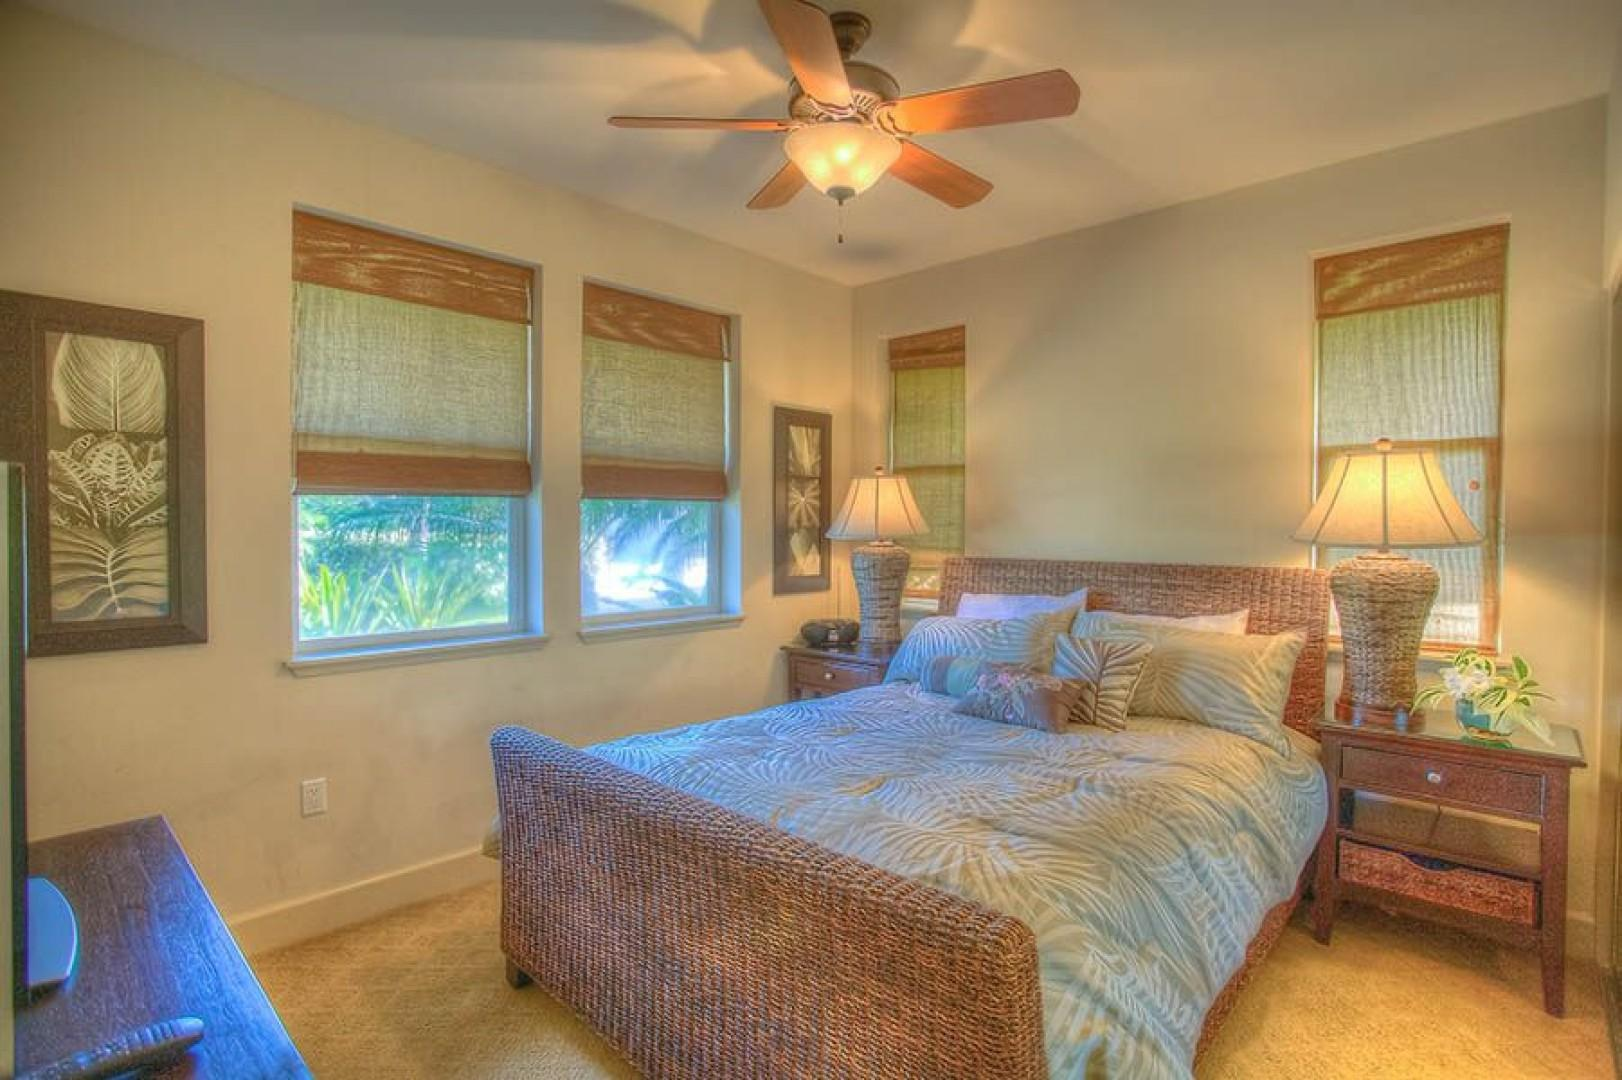 Bedroom 3, Queen bed with tropical views and 37